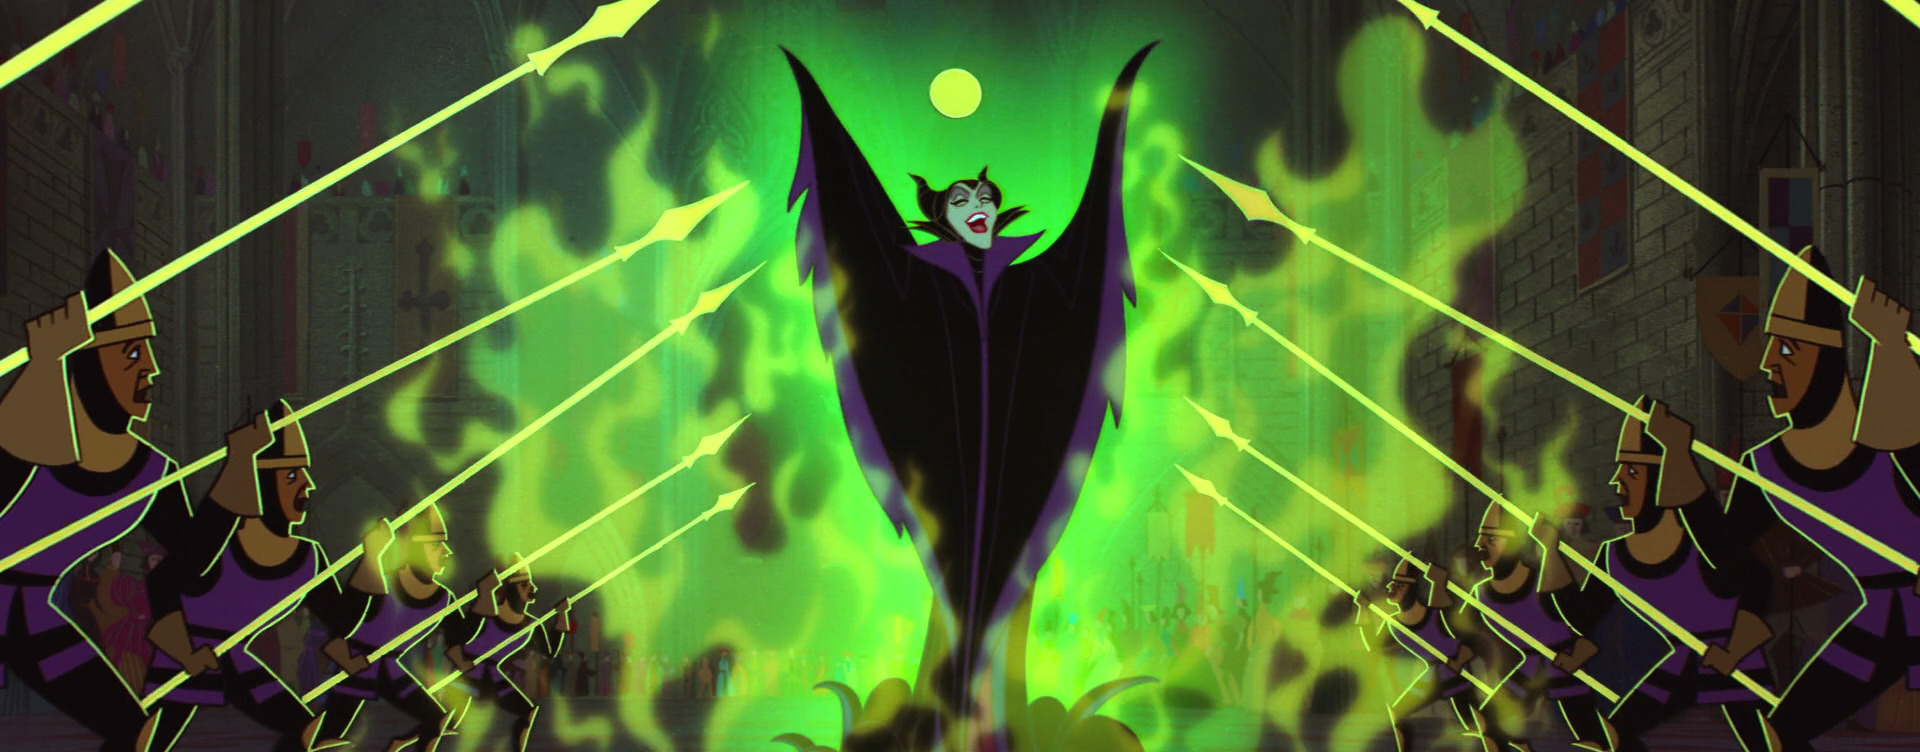 Villain Vignettes 11 Maleficent Rotoscopers